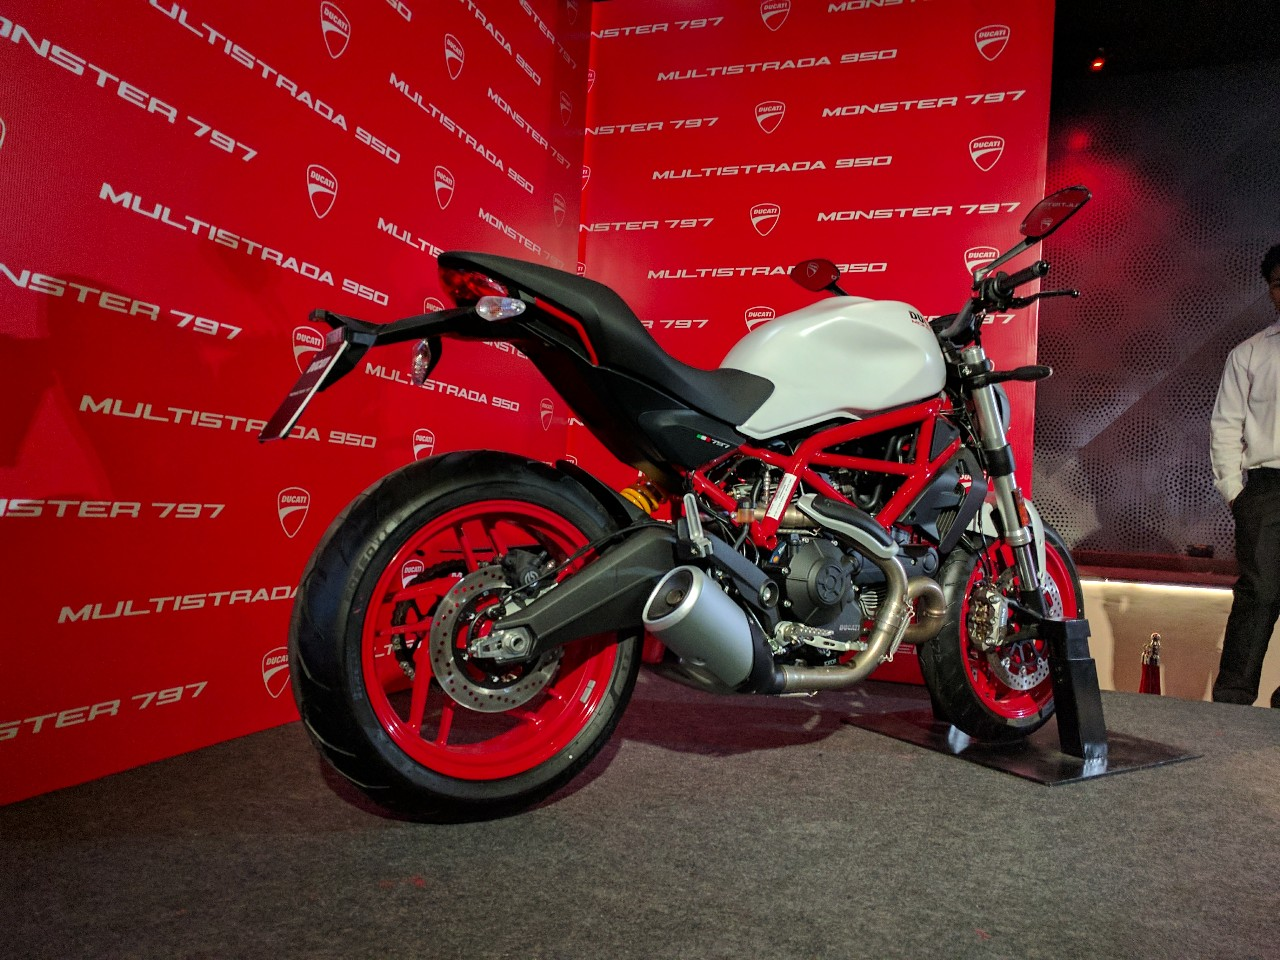 2018 Ducati Monster 659 Confirmed For Australia And New